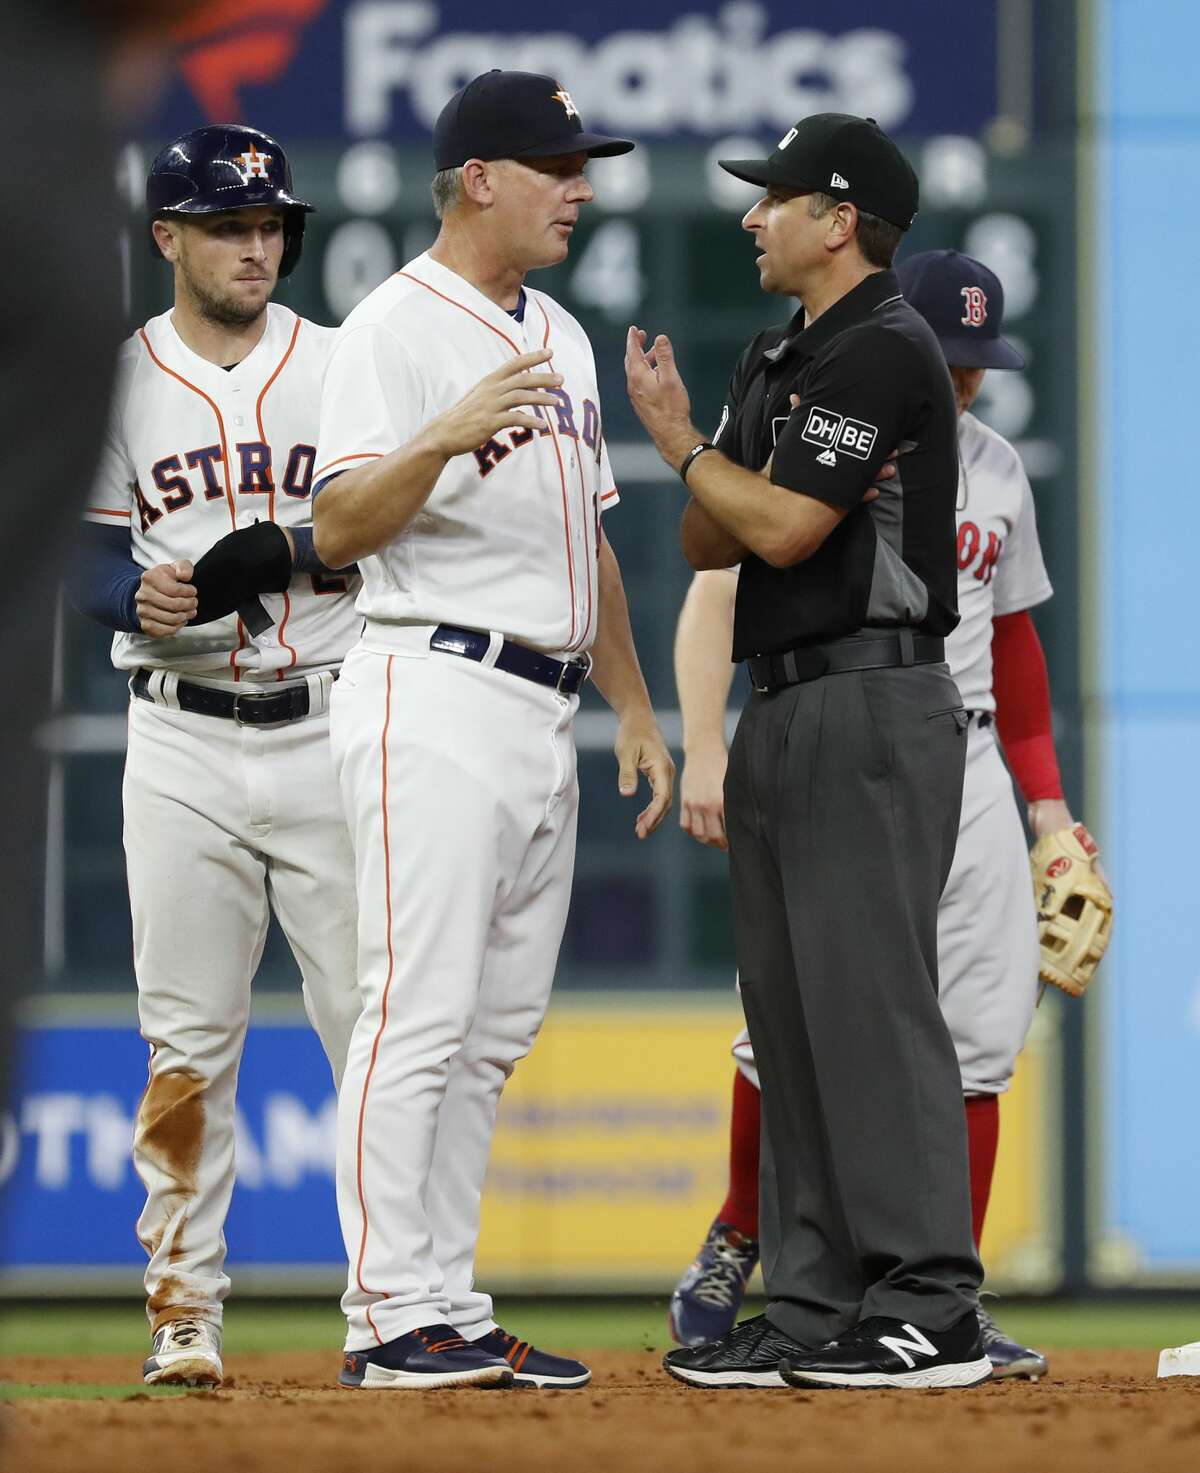 Houston Astros manager AJ Hinch (14) argues the call on Alex Bregman (2) after he got tangled up with Boston Red Sox Rafael Devers at second base during the eighth inning of an MLB baseball game at Minute Maid Park, Thursday, May 31, 2018, in Houston. ( Karen Warren / Houston Chronicle )